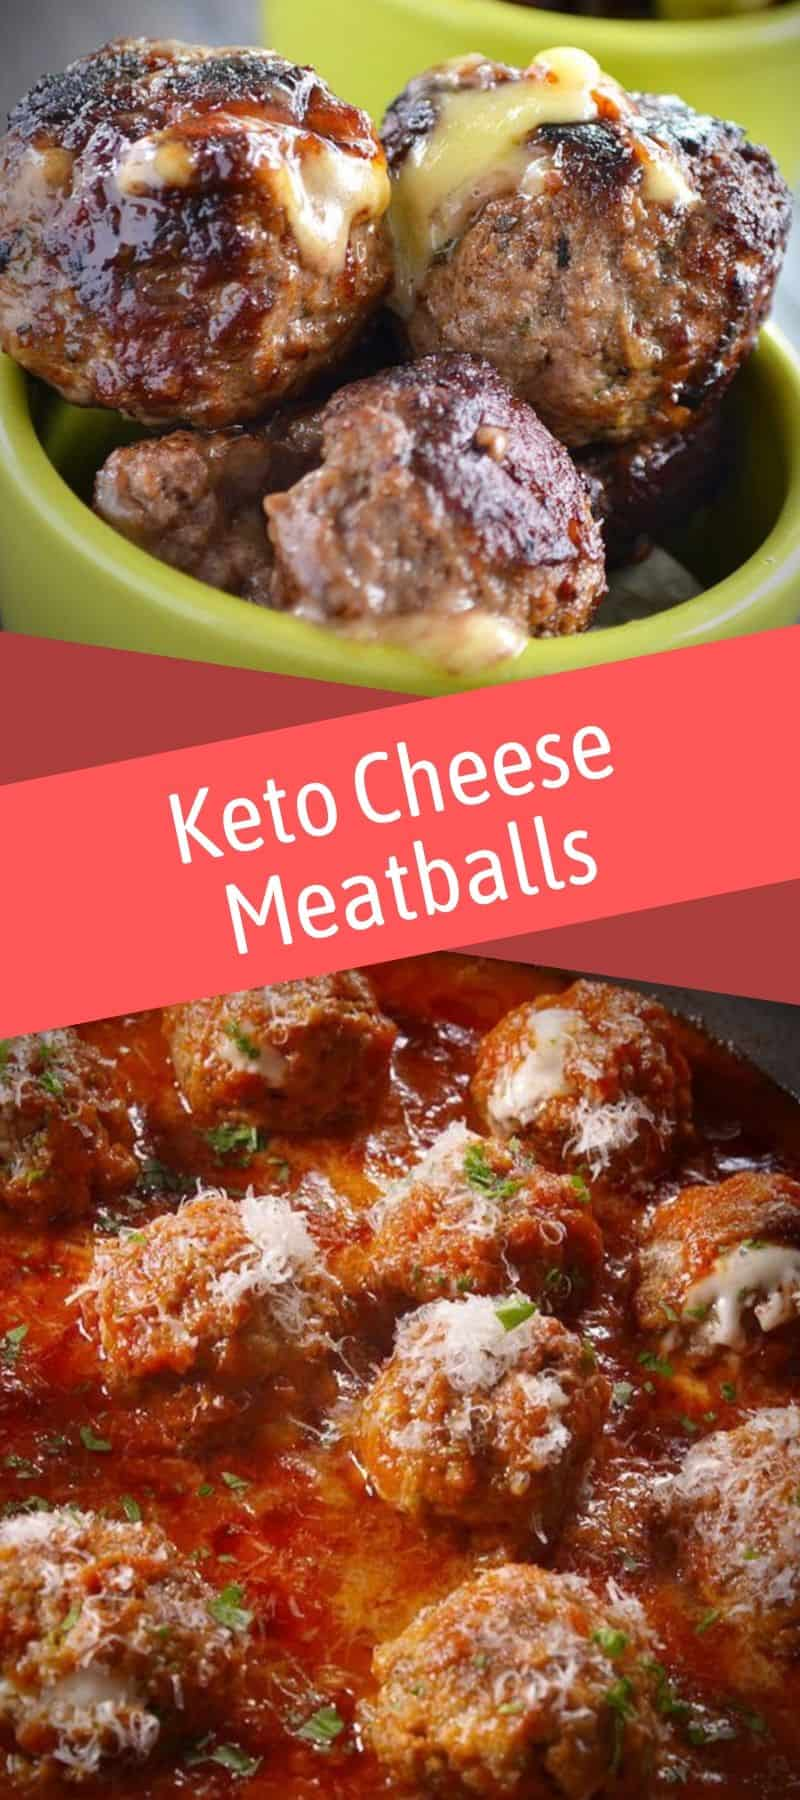 Keto Cheese Meatballs Recipe 3